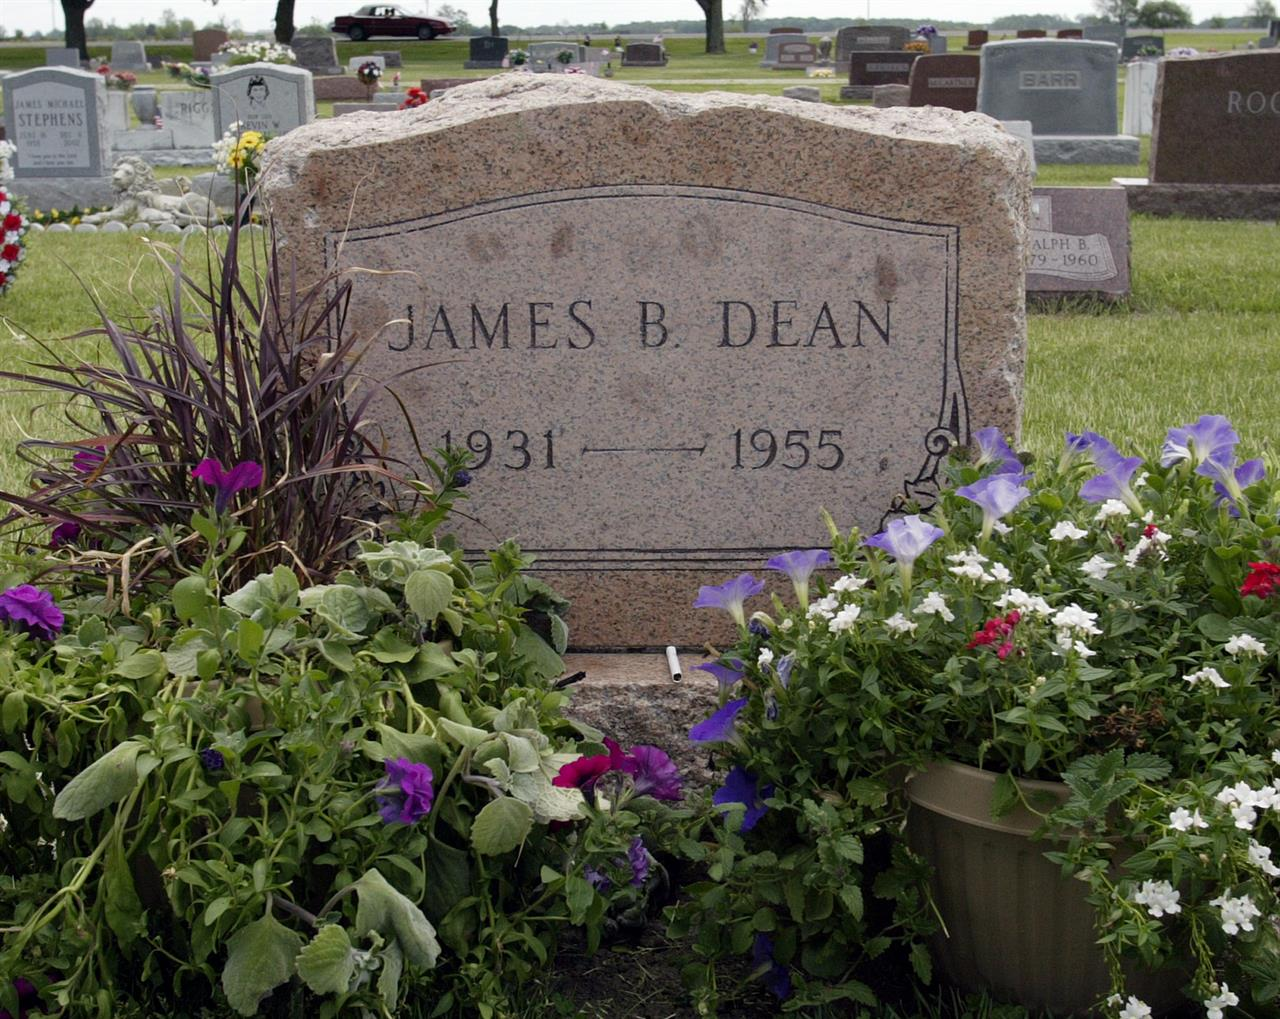 """FILE - This May 27, 2005 file photo shows plants and flowers at the grave of actor James Dean in Fairmount, Ind. Dean hasn't been alive in 64 years, but the """"Rebel Without a Cause"""" actor has been cast in a new film about the Vietnam War. The filmmakers behind the independent film """"Finding Jack"""" said Wednesday that a computer-generated Dean will play a co-starring role in the upcoming production. The digital Dean is to be assembled through old footage and photos and voiced by another actor. (AP Photo/John Harrell, File)"""